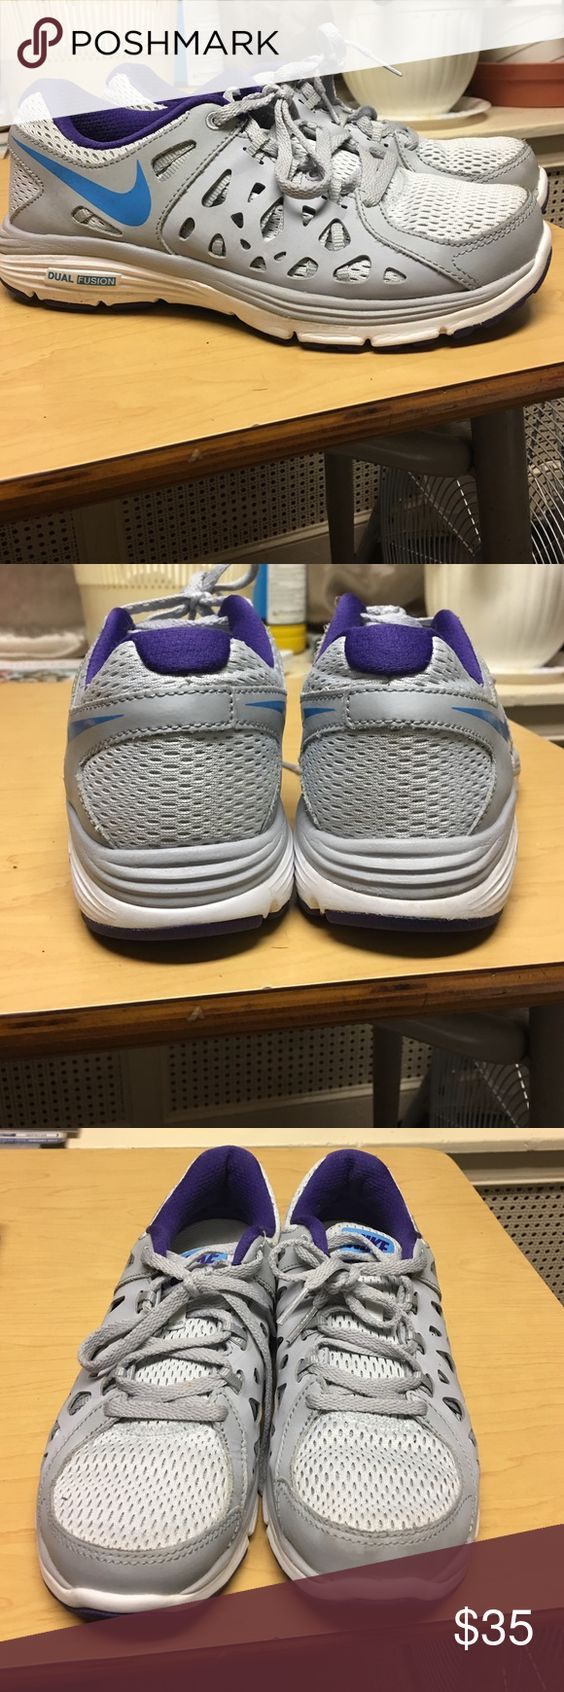 NIKE Dual Fusion Gently used NIKE dual fusion sneakers Nike Shoes Sneakers